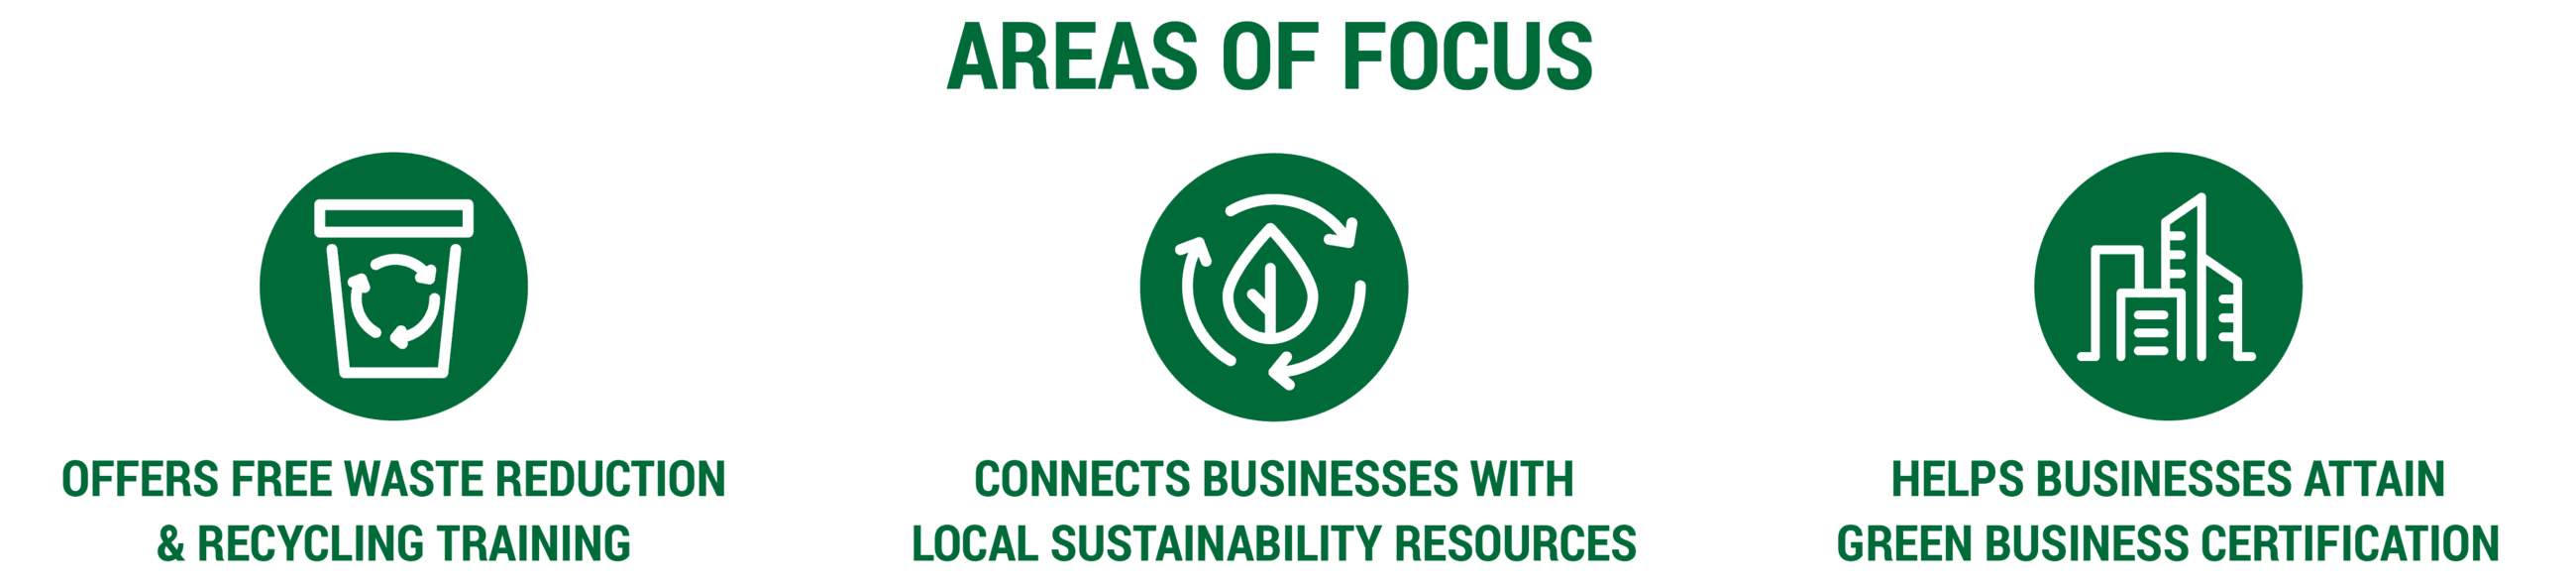 Green Business Program Areas of Focus: (1) Recycling Training, (2) Connects Businesses with Sustaina